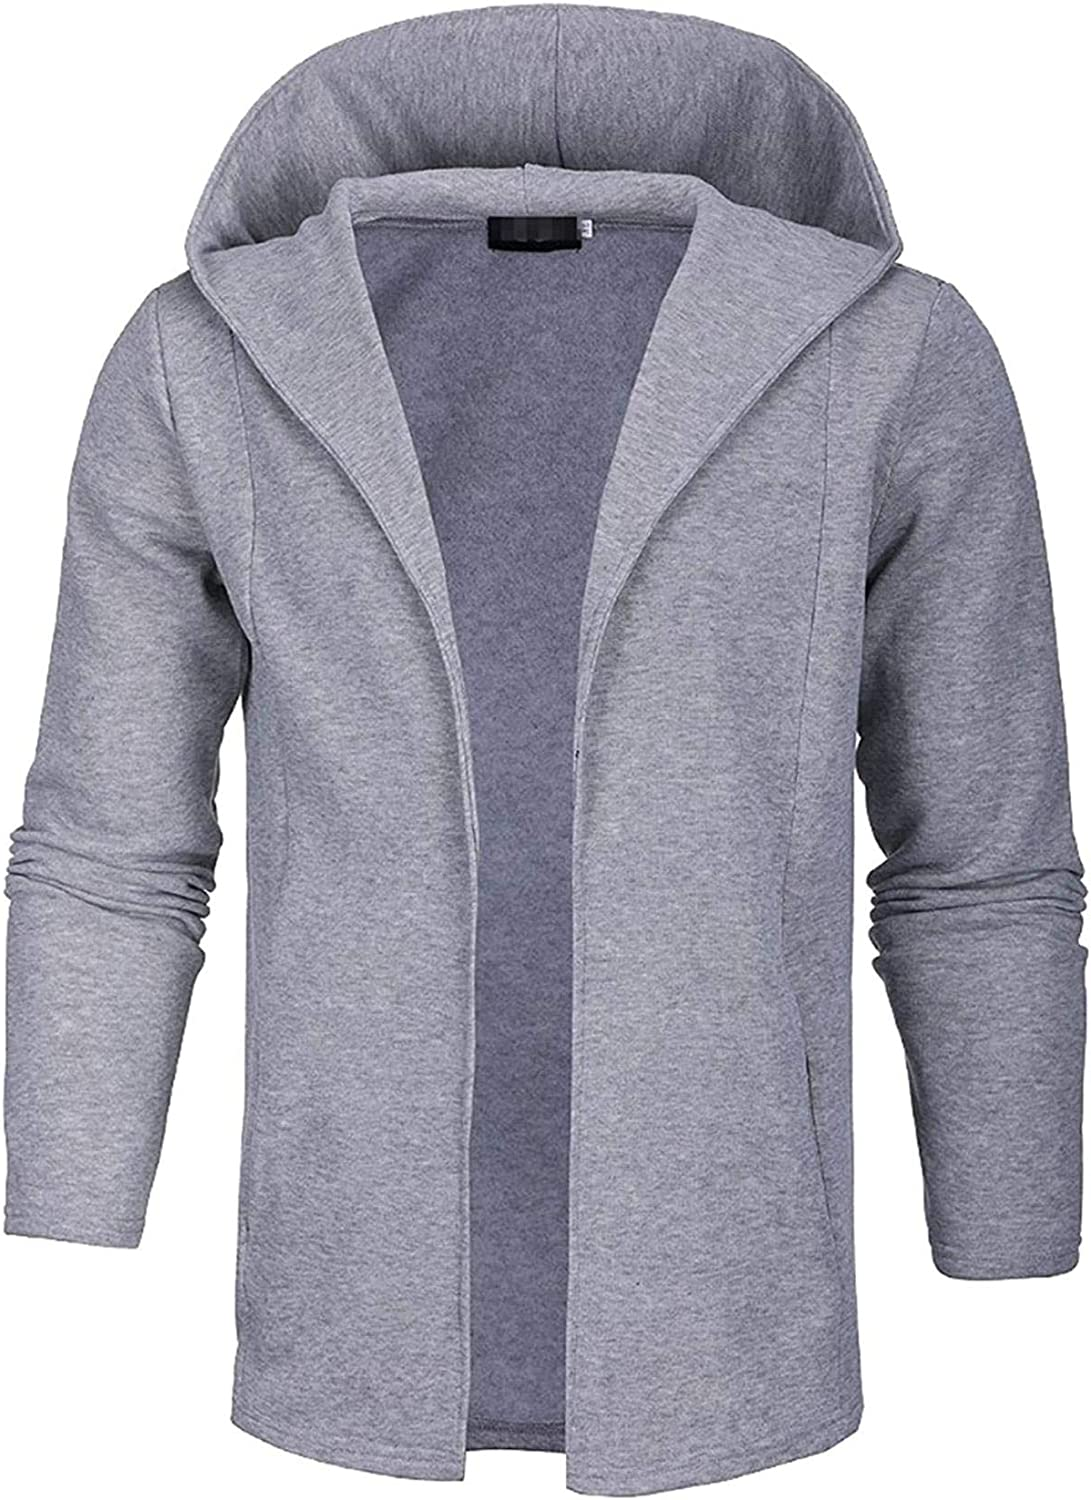 Men's Cardigans Male Casual Long Hooded Knitted Outerwear Slim Solid Color Cardigan Sweaters